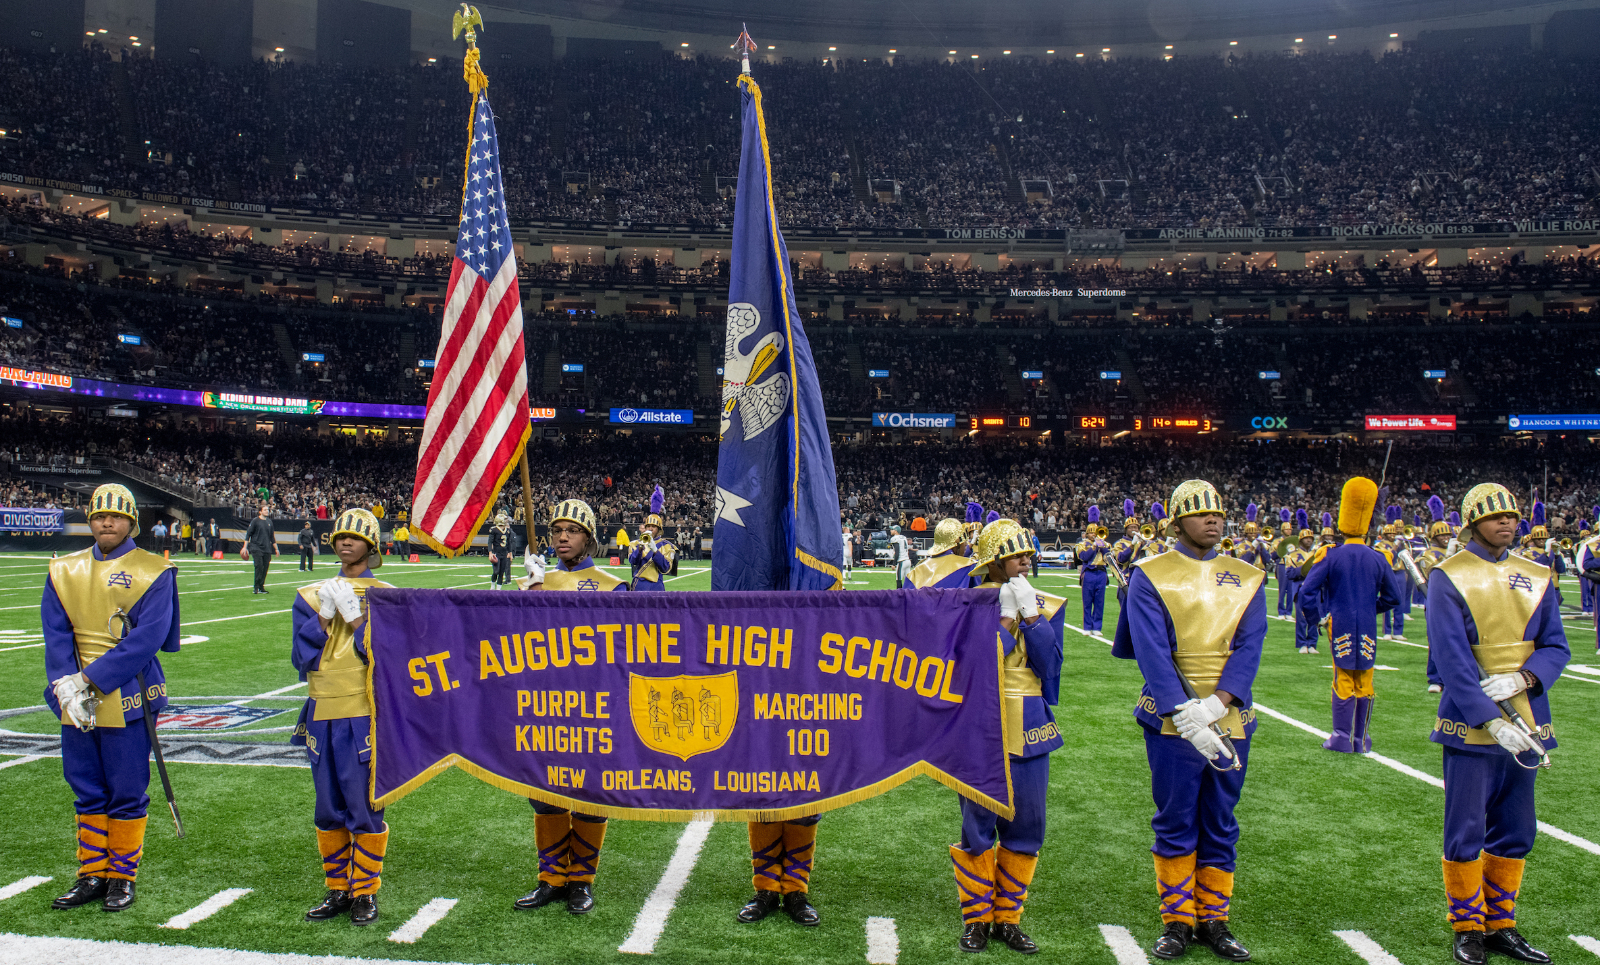 Marching 100: Saints game halftime performance Photos and Video